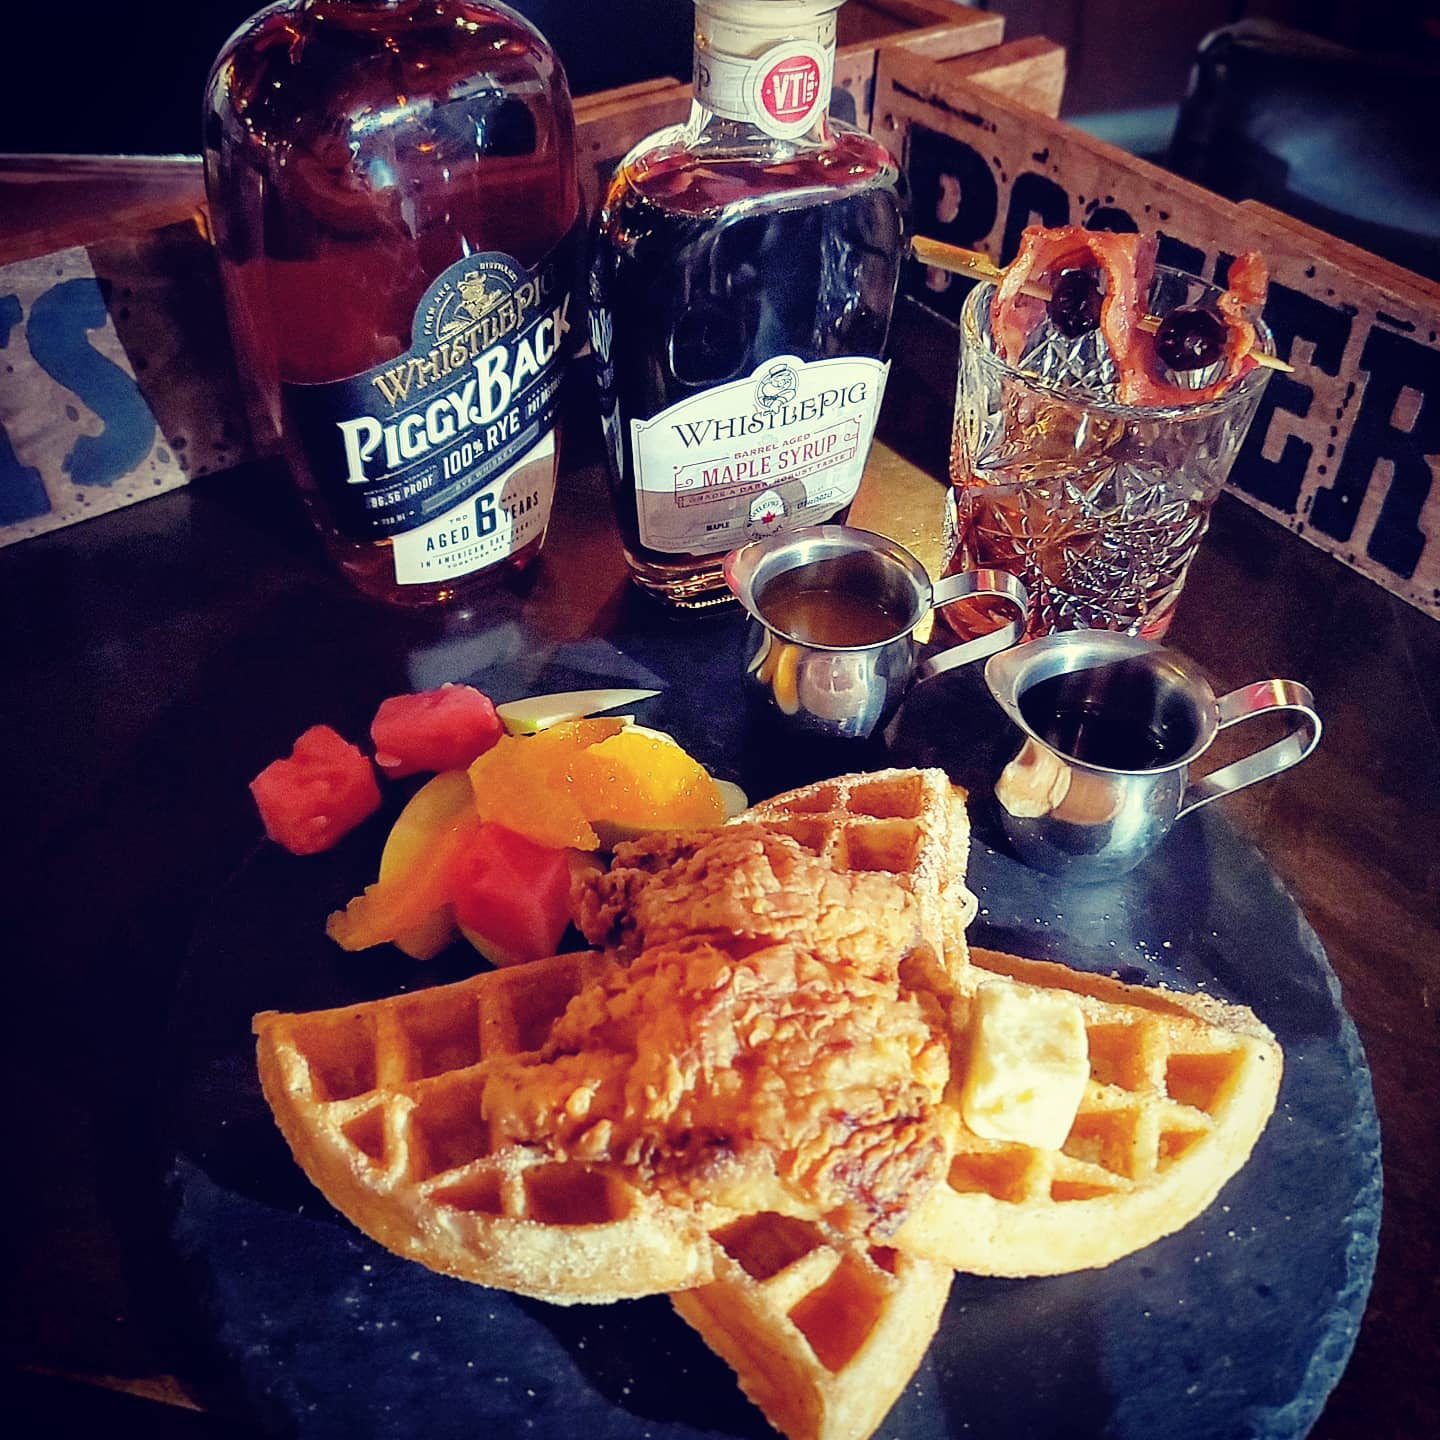 A plate of waffles with chicken with bottles of whiskey behind it